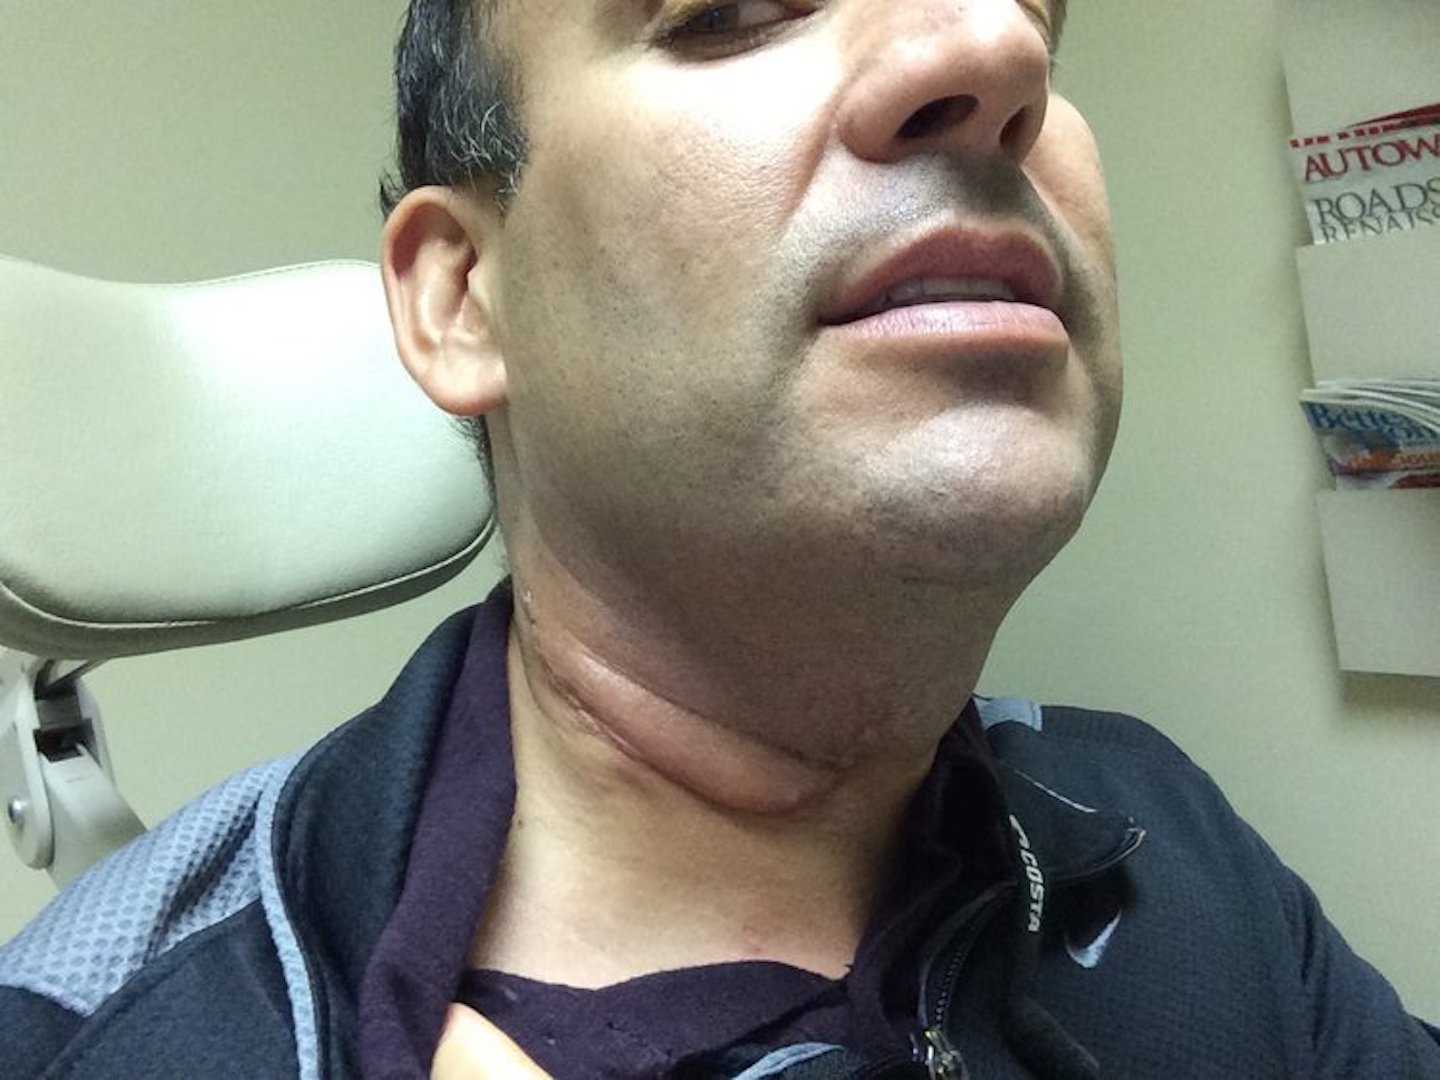 hpv mouth cancer prognosis)